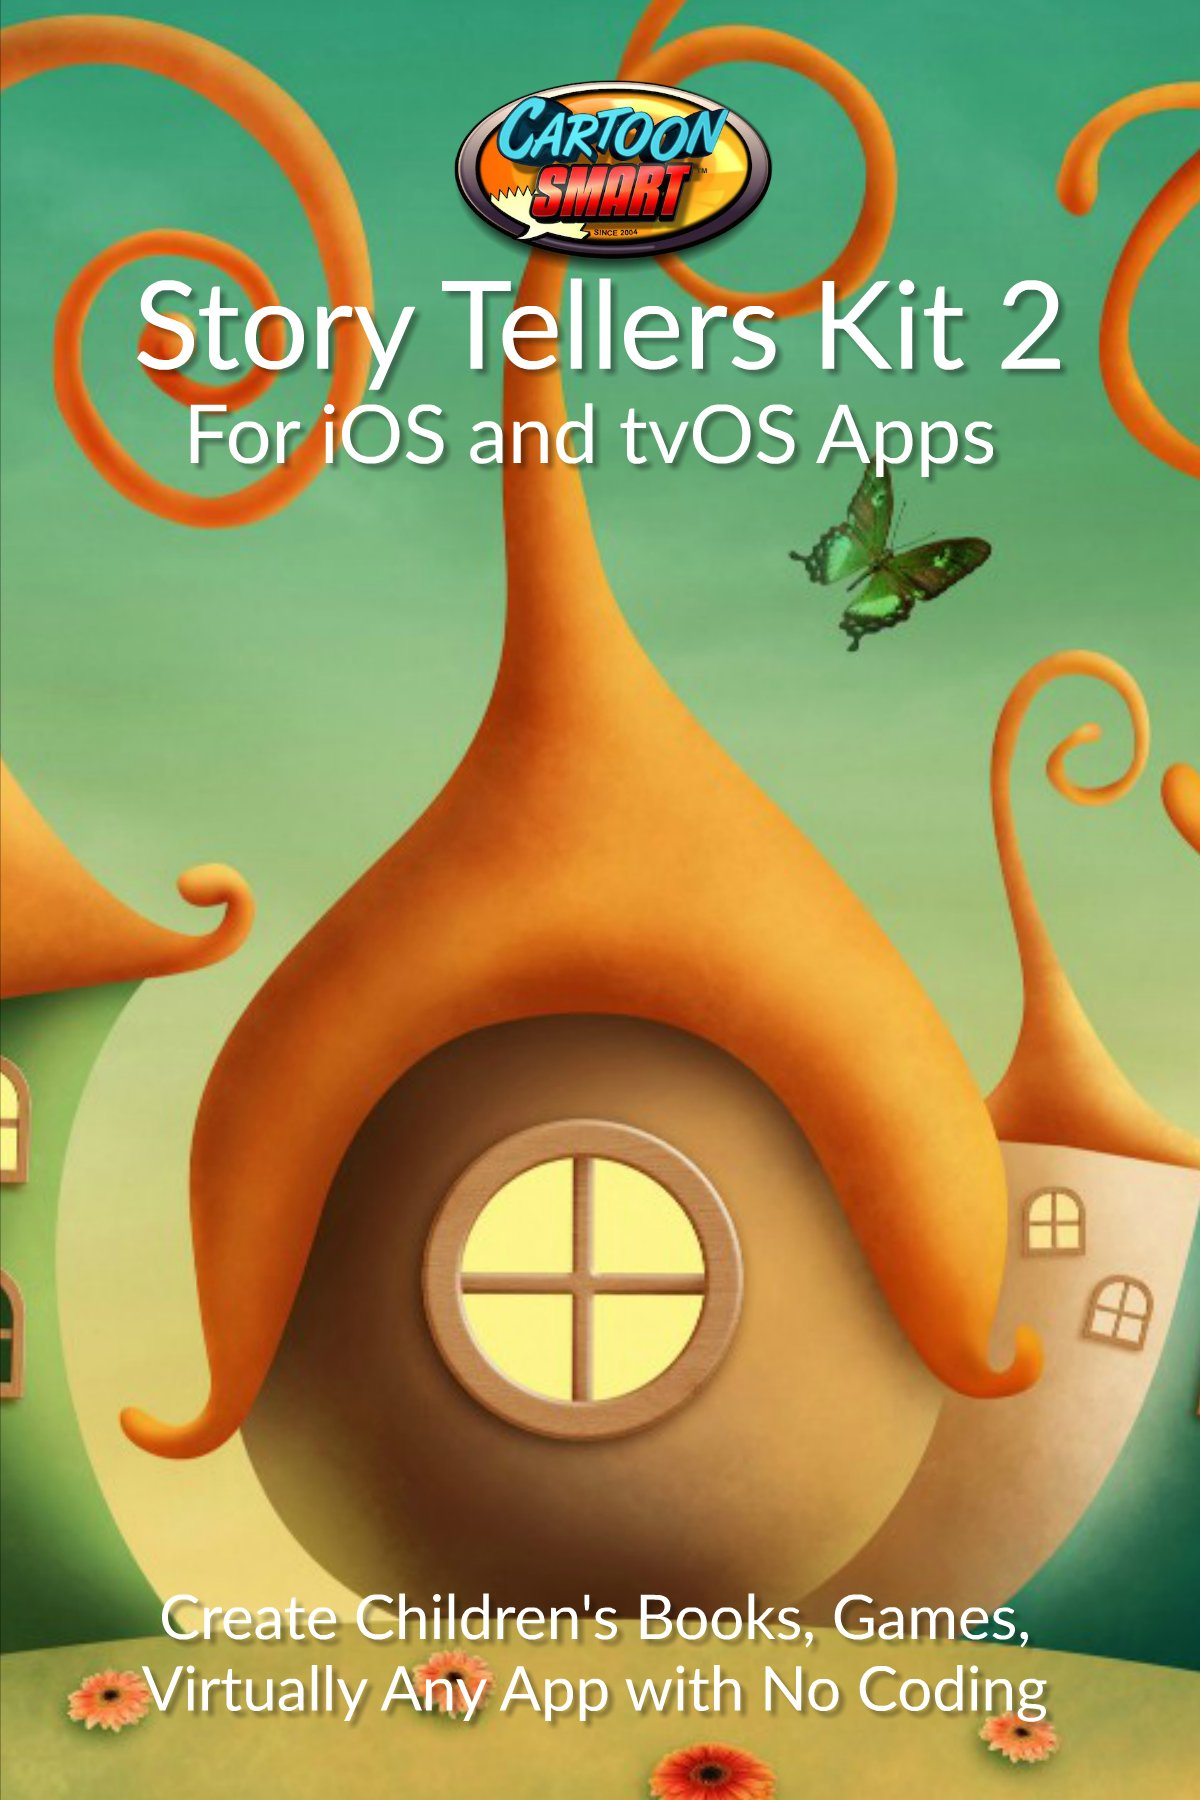 Story Teller Kits 2 - For Xcode Development of Story Book Apps